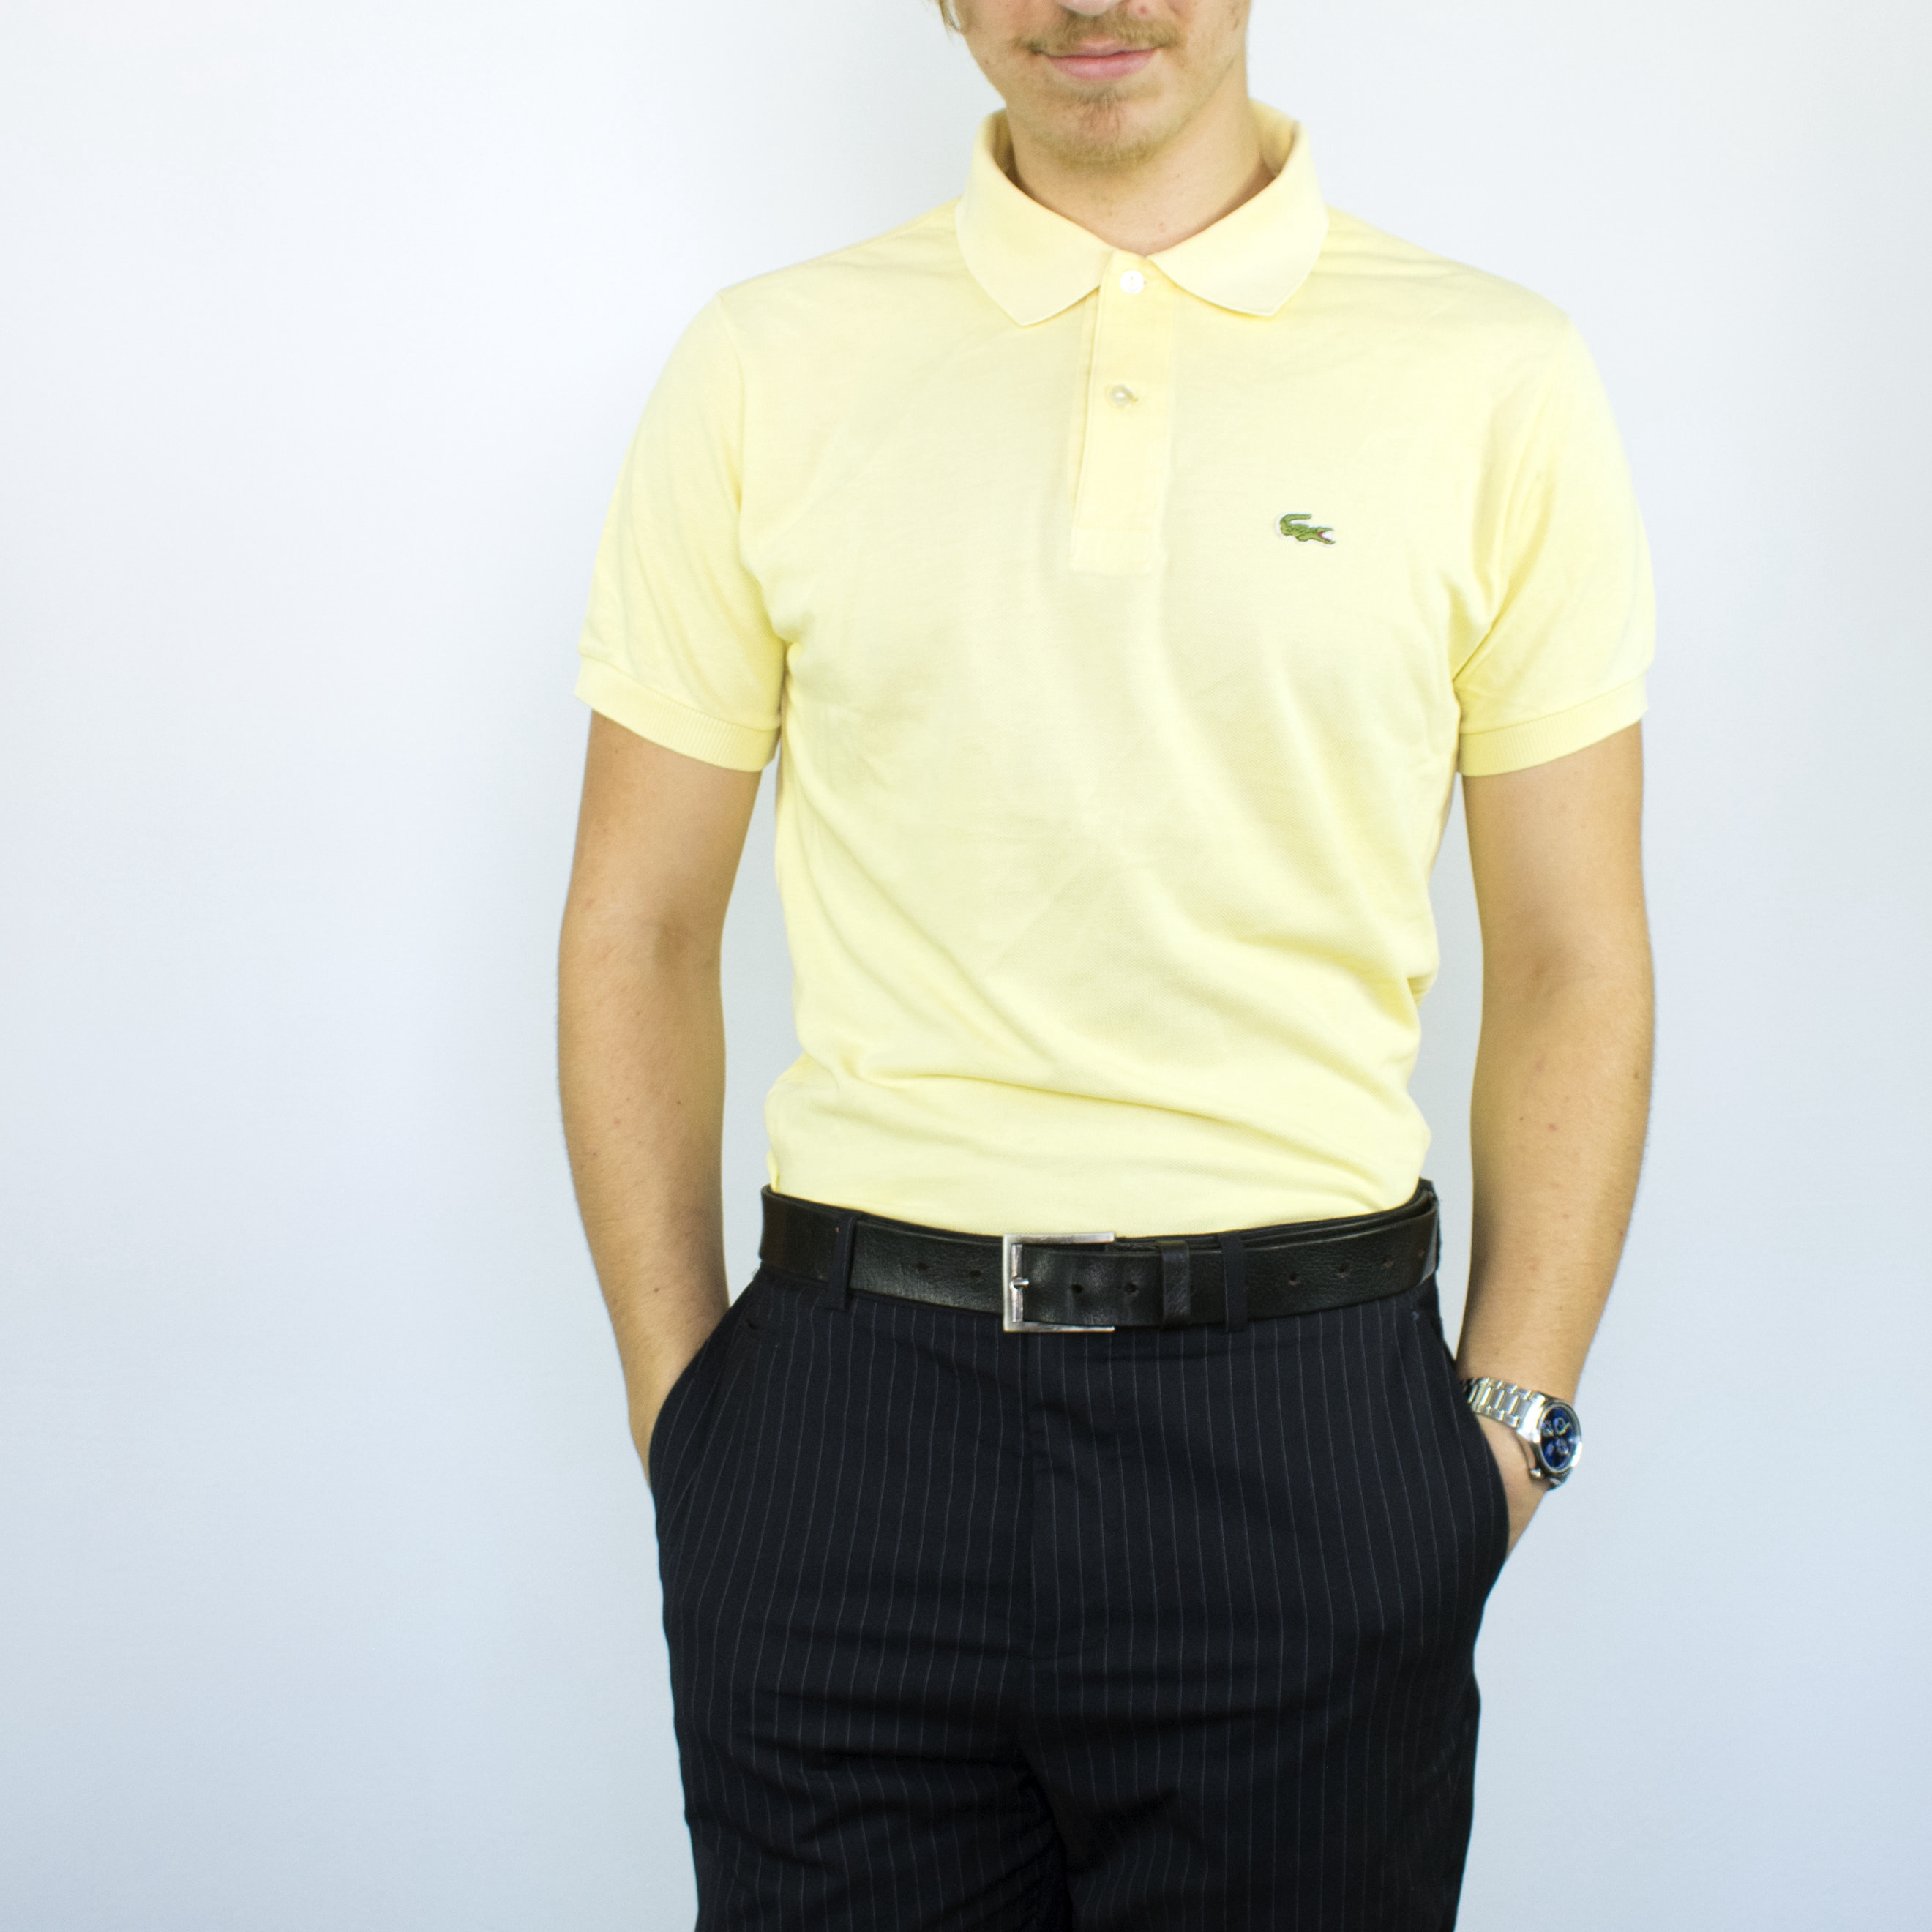 Unisex Vintage Lacoste polo shirt in beige has a small logo on the front